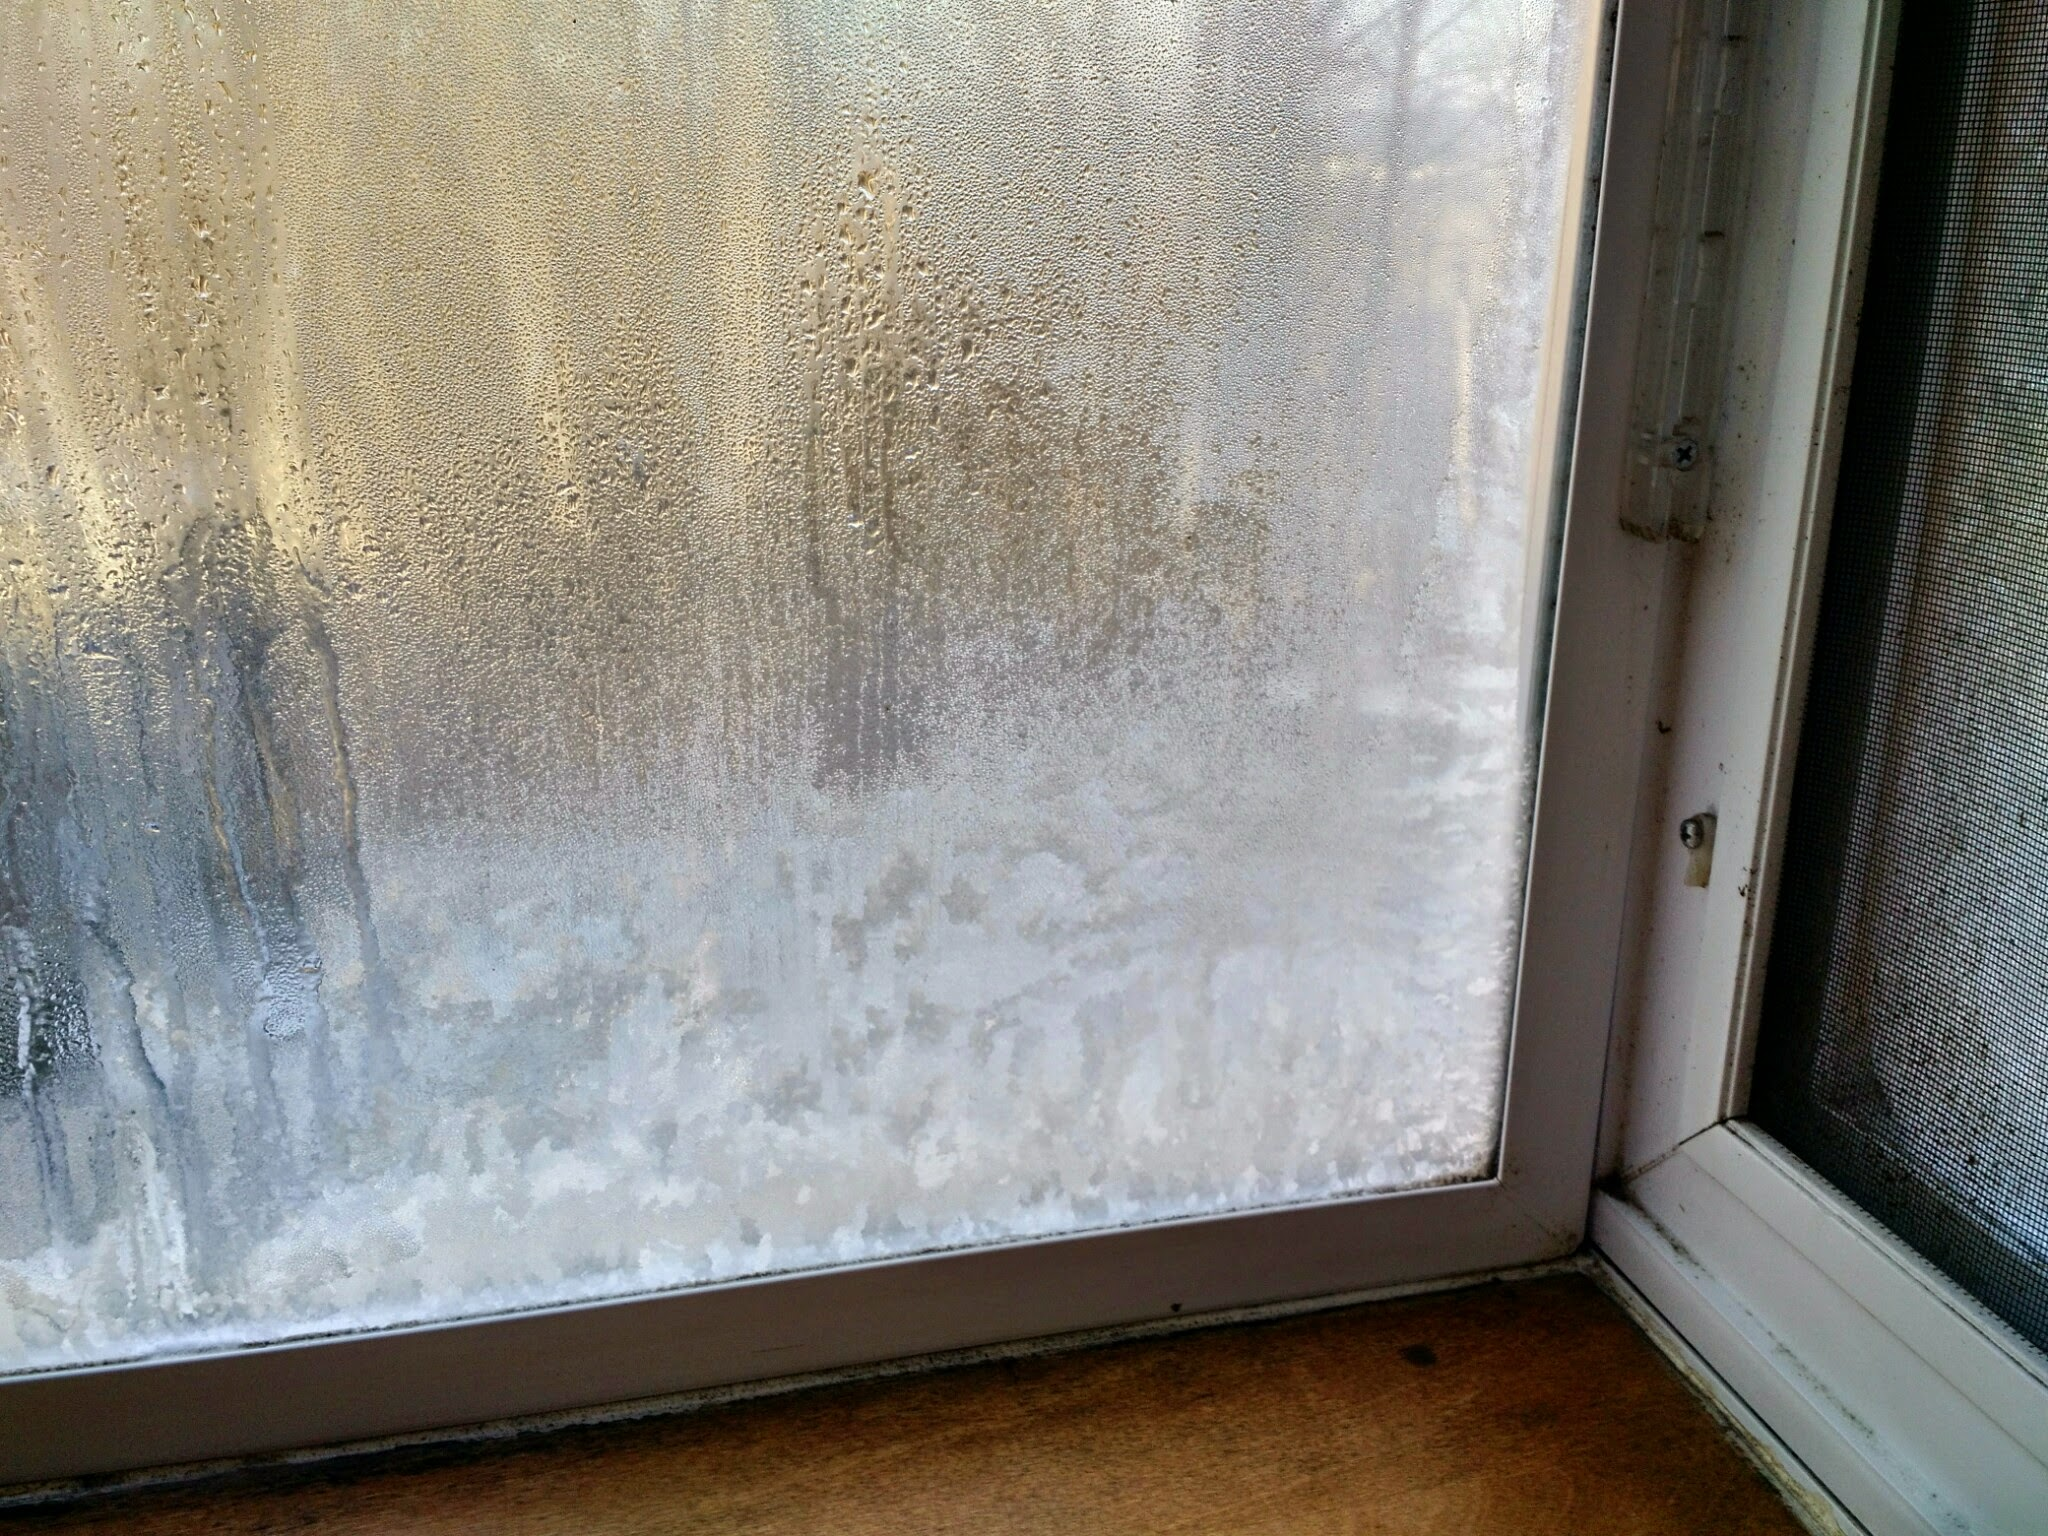 Water and Ice on a Cold Window